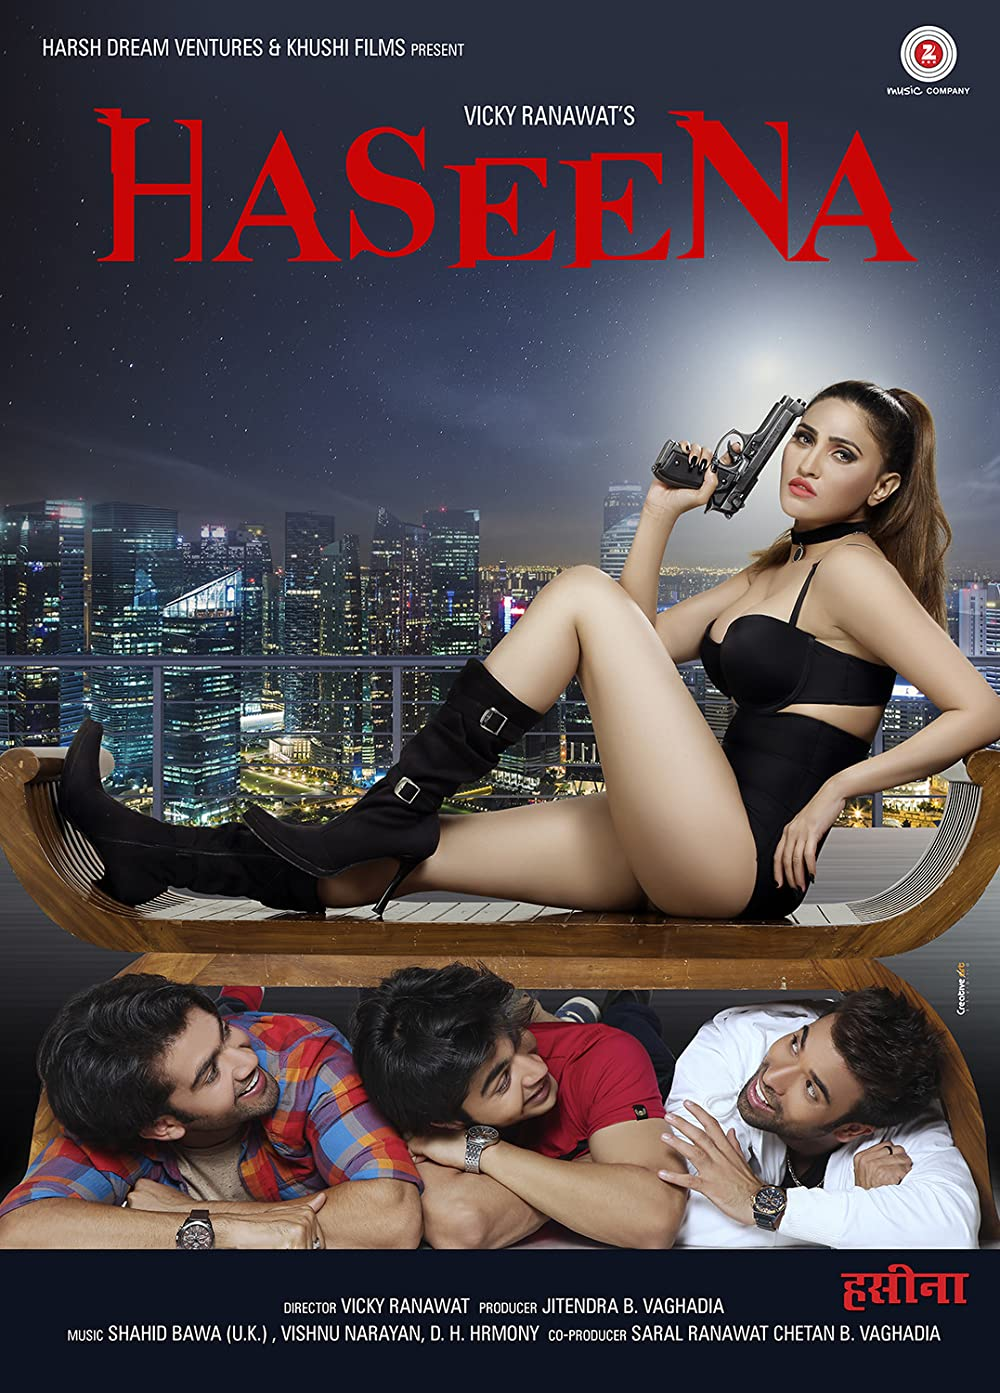 18+ Haseena 2018 Hindi 1080p HDRip 1.8GB x264 AAC